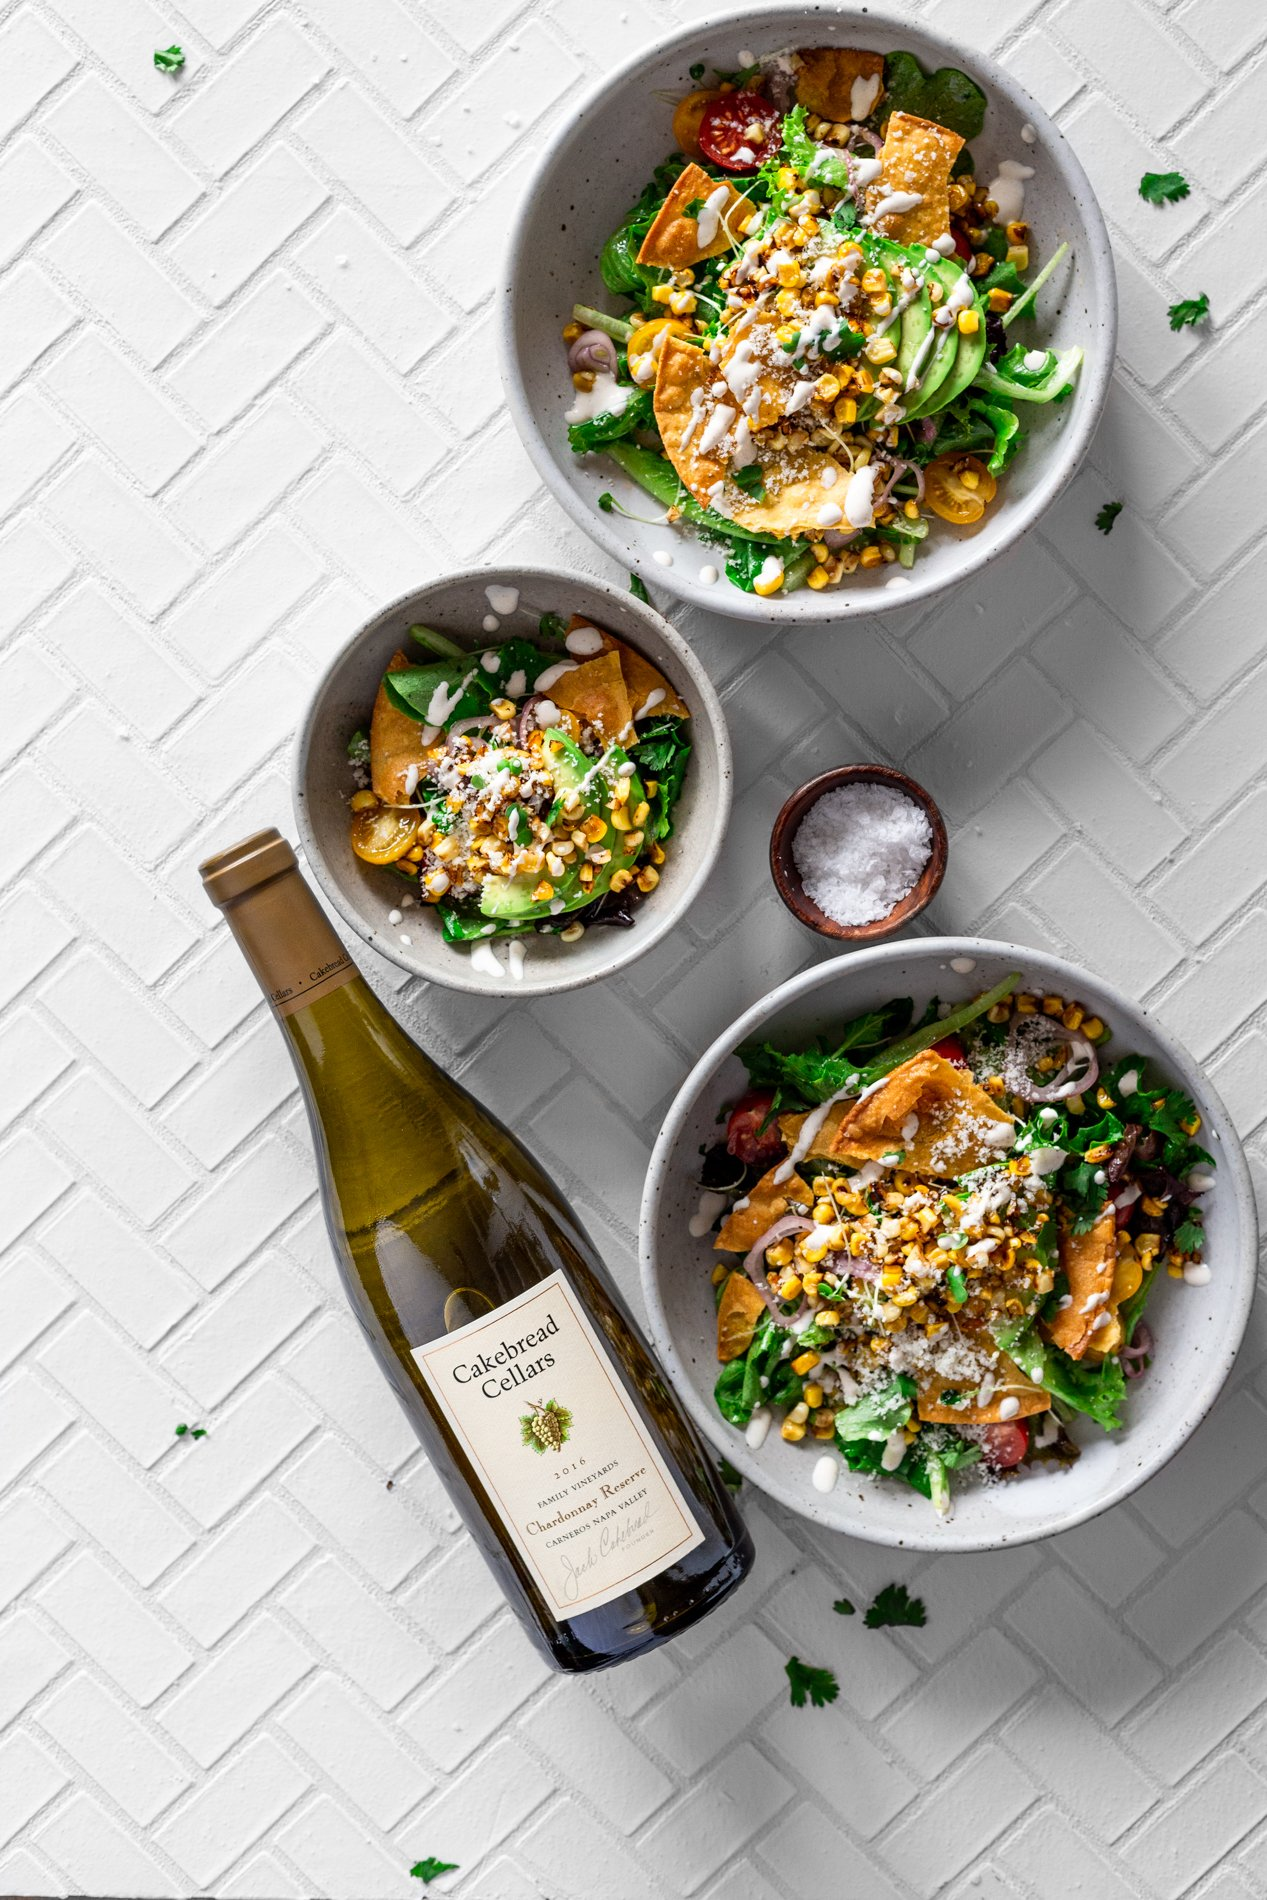 overhead view of two large and one small bowl of mexican street corn salad with a tiny bowl of sea salt and cilantro sprinkled around the bowls. a bottle of cakebread cellars wine is laying down with the label facing up